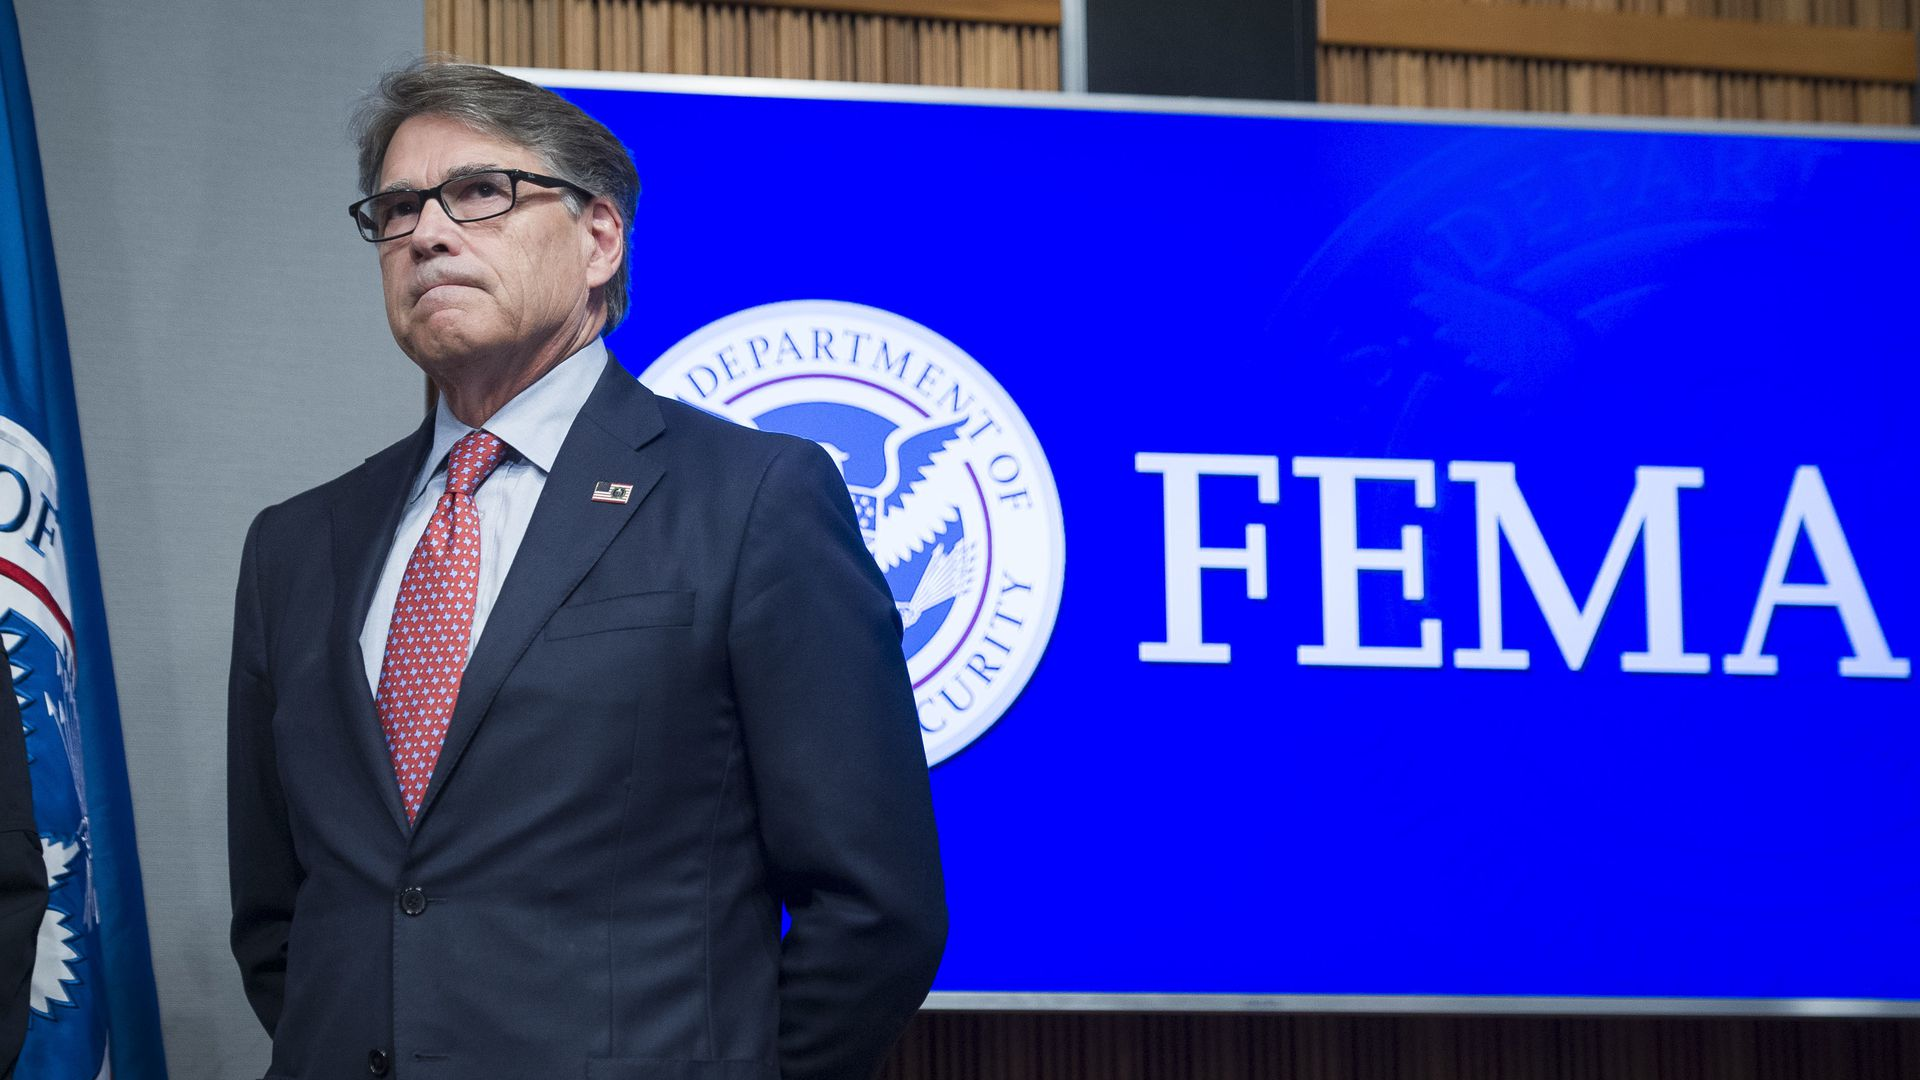 Energy Secretary Rick Perry stands with his hands behind his back in front of a blue FEMA sign.